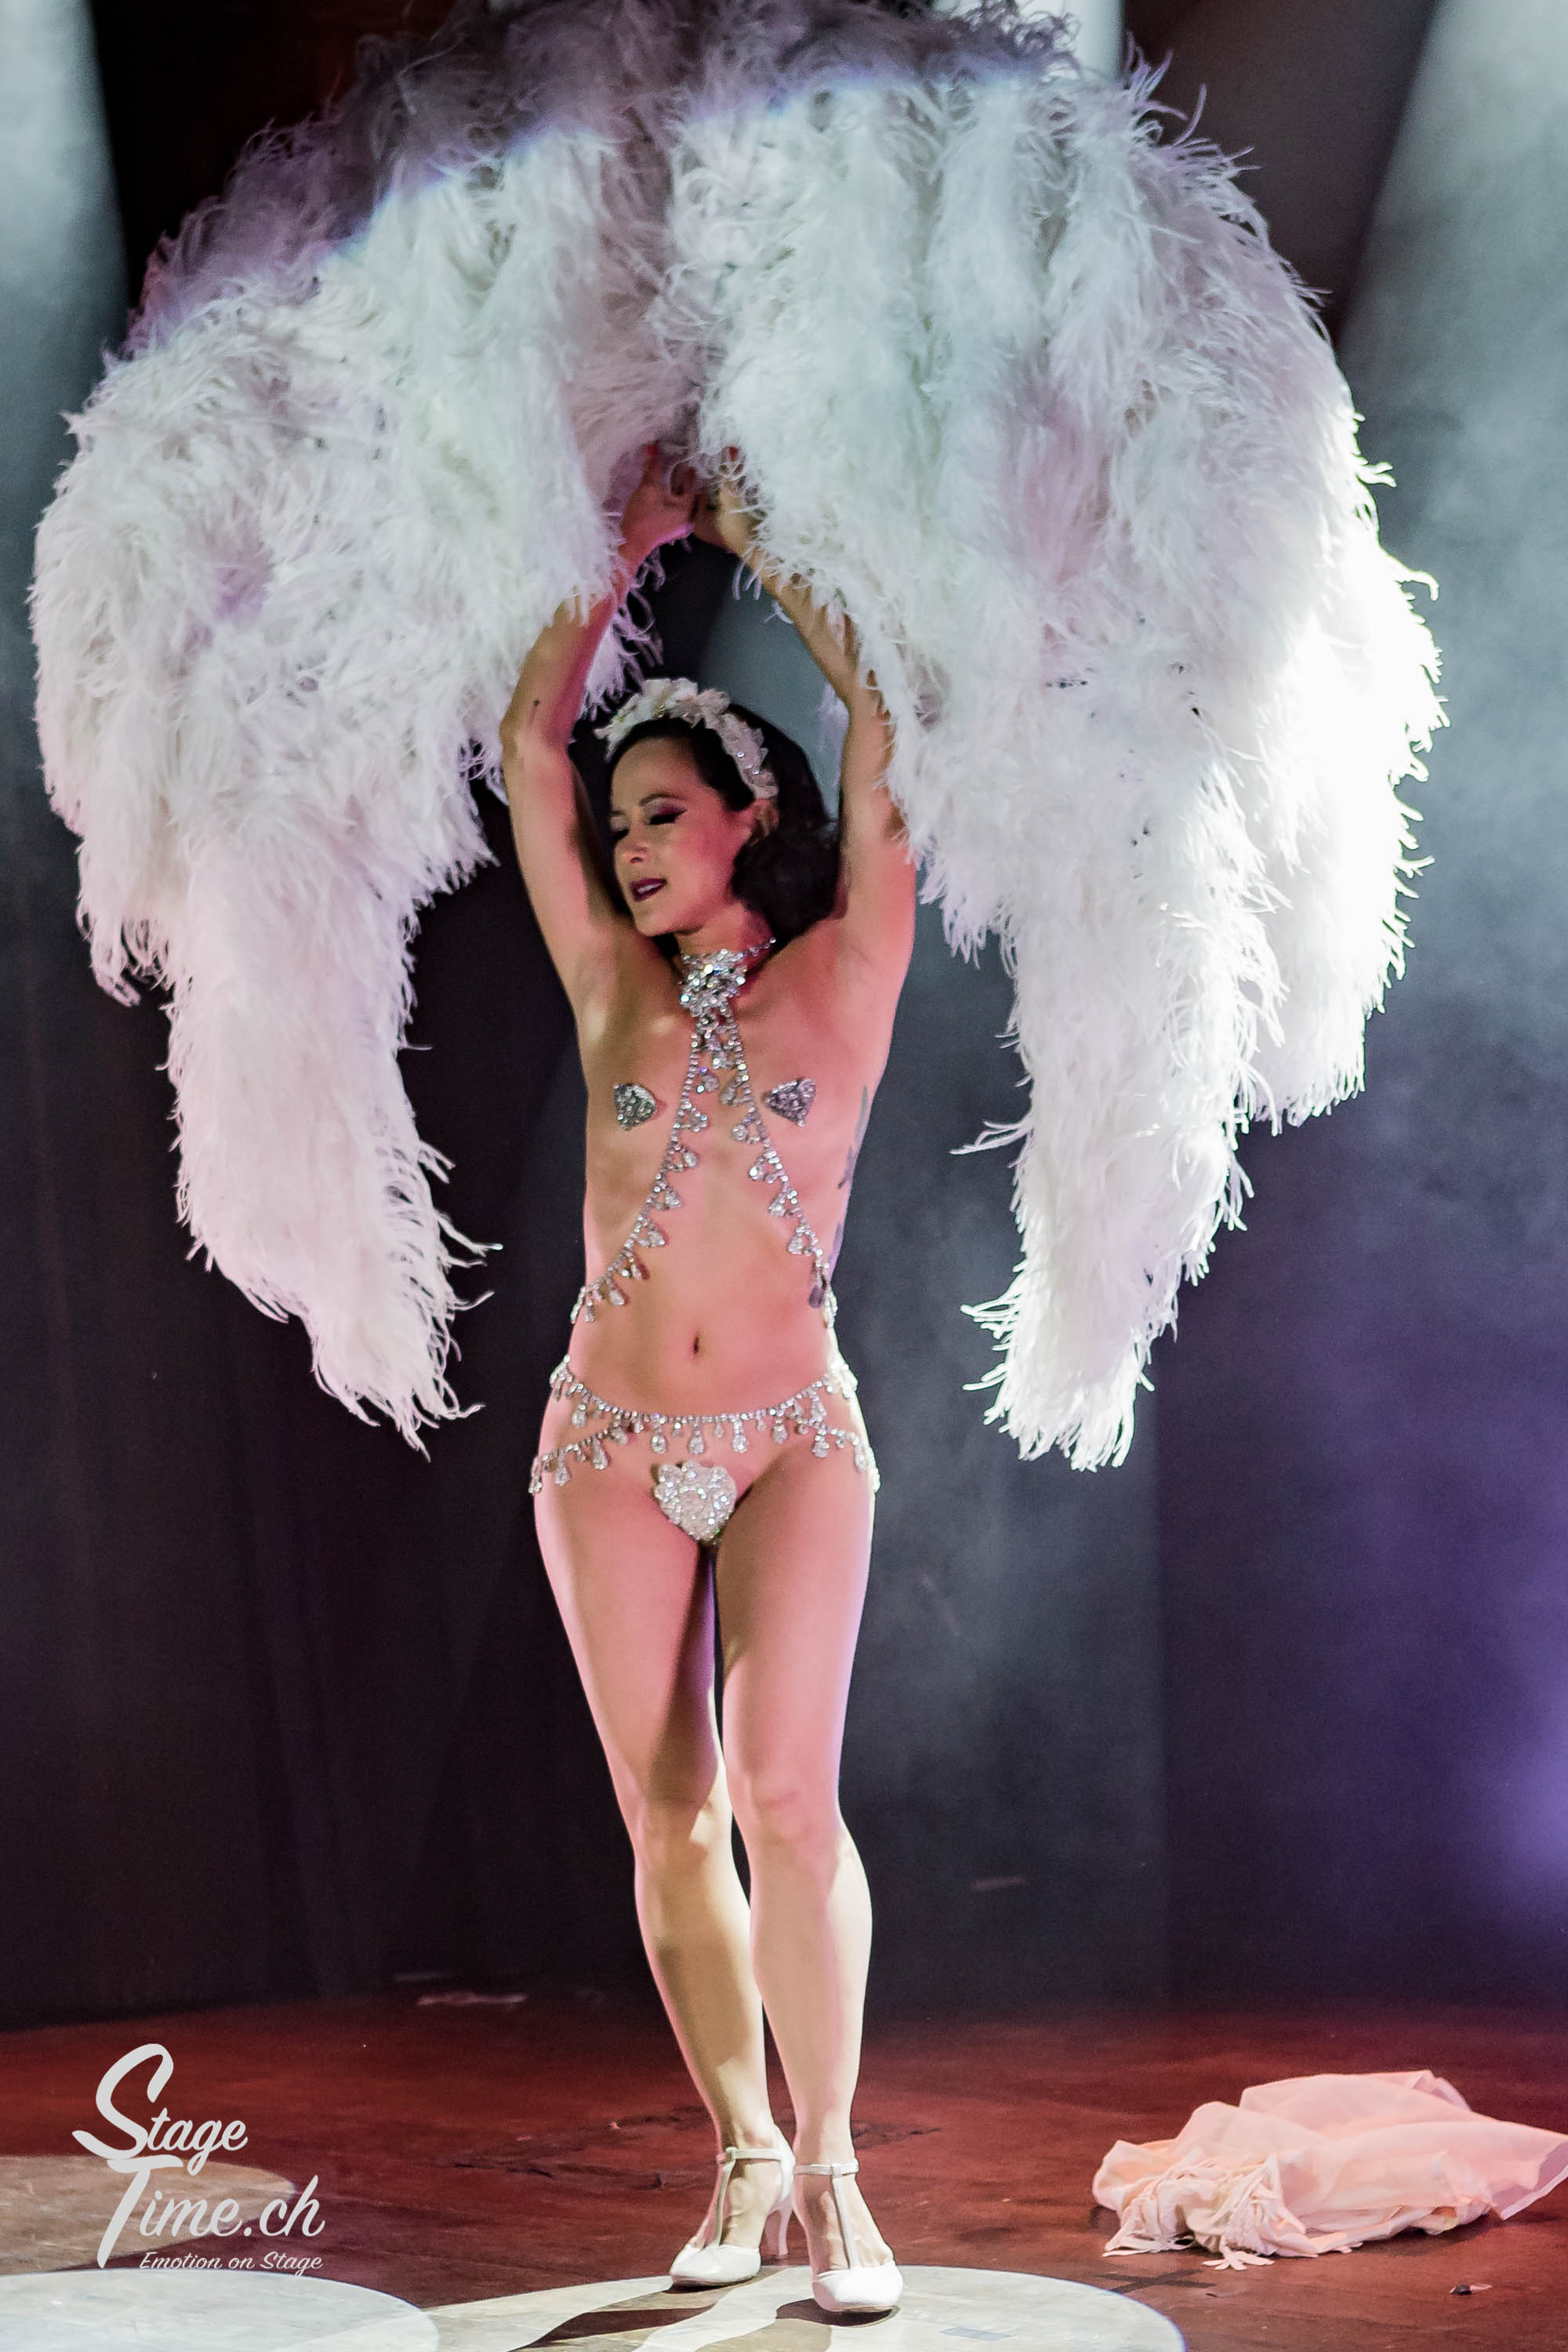 Silly_Thanh___Zurich_Burlesque_Festival-10